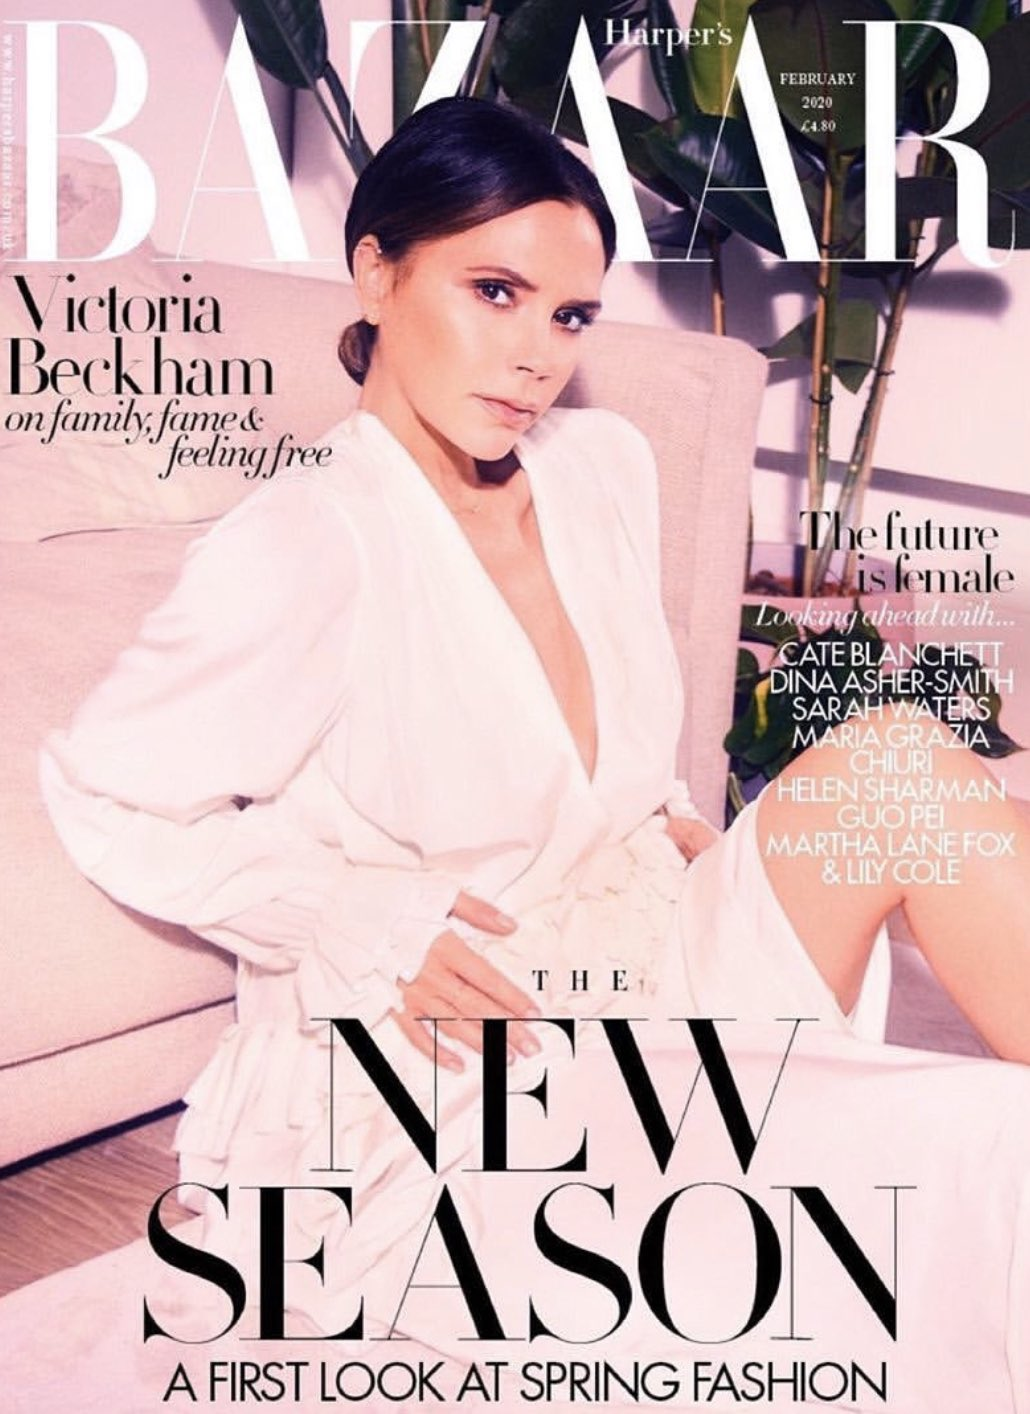 VICTORIA BECKHAM - HARPER'S BAZAAR MAGAZINE UK FEBRUARY 2020 BRITISH EDITION NEW